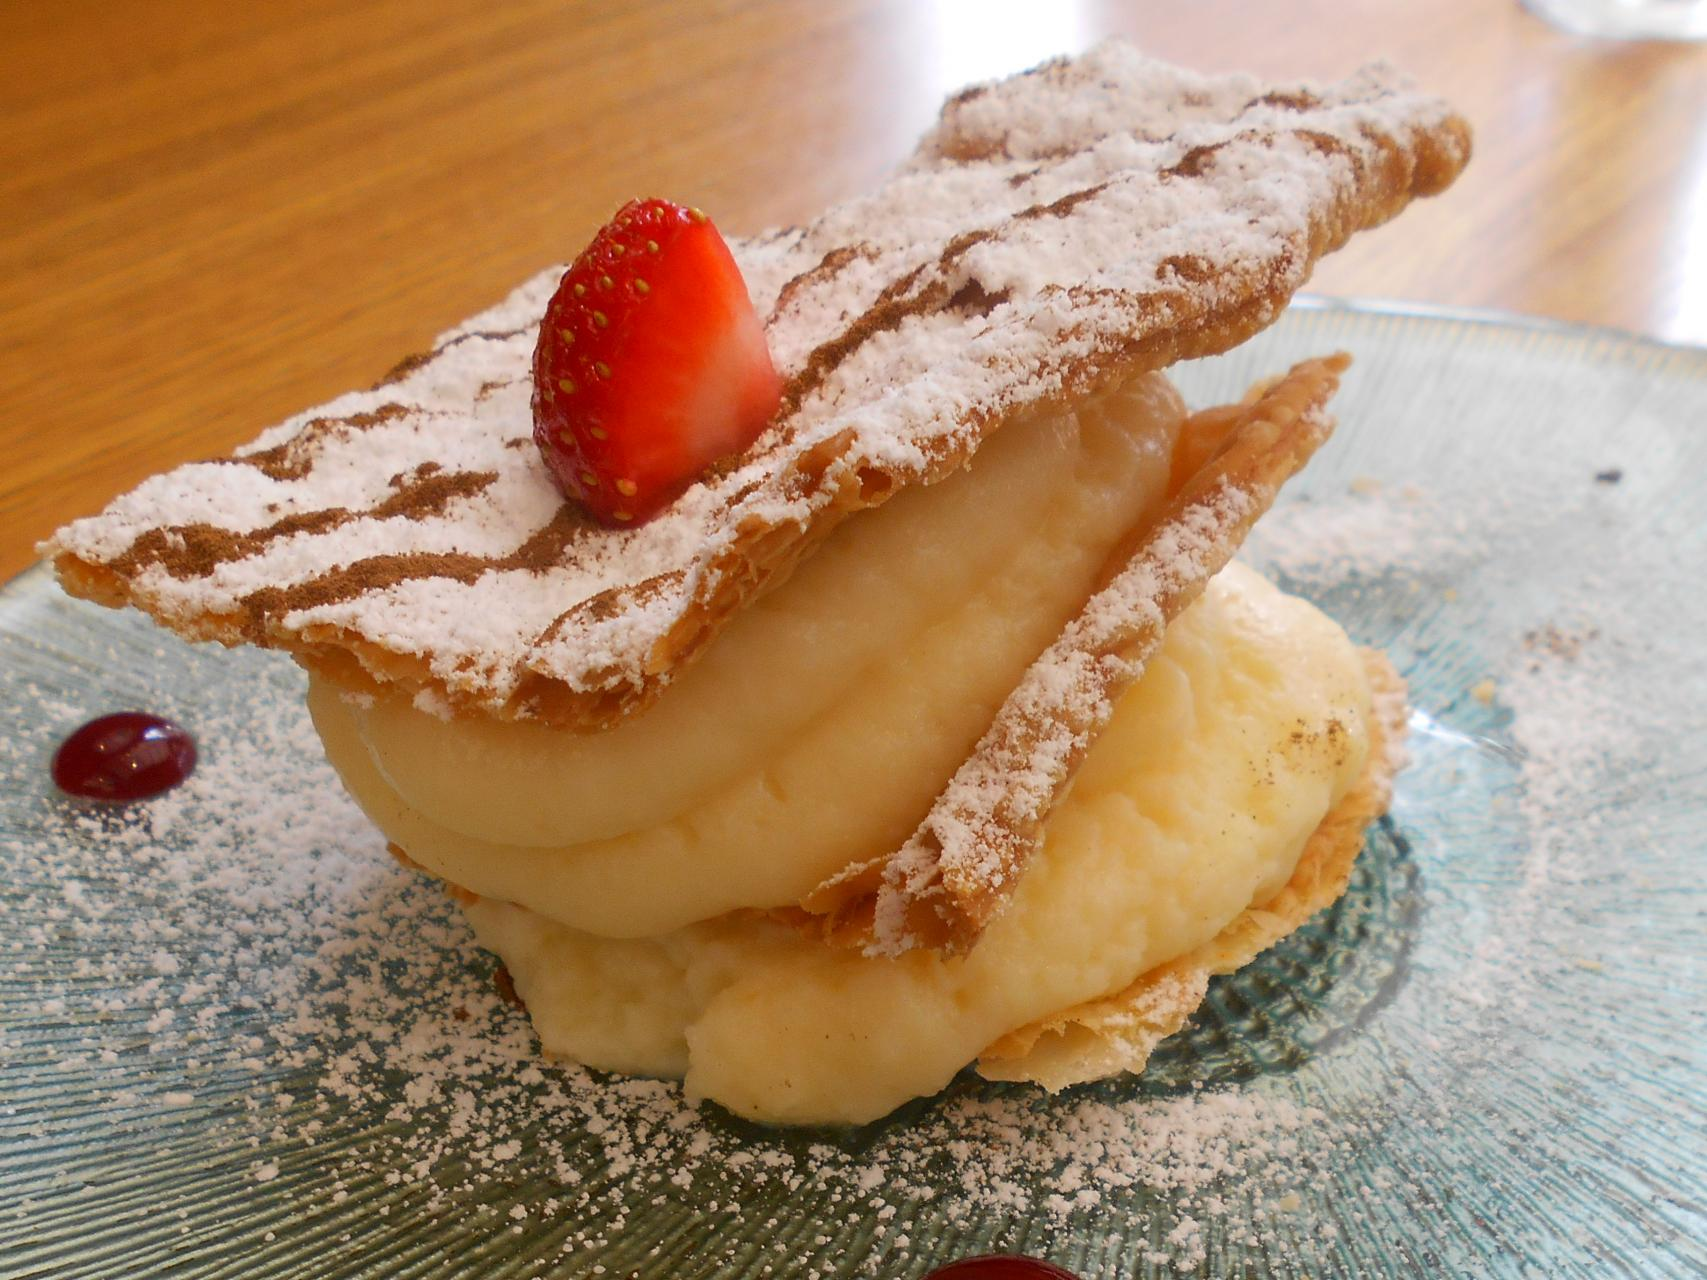 The millefeuille was absolutely delish.